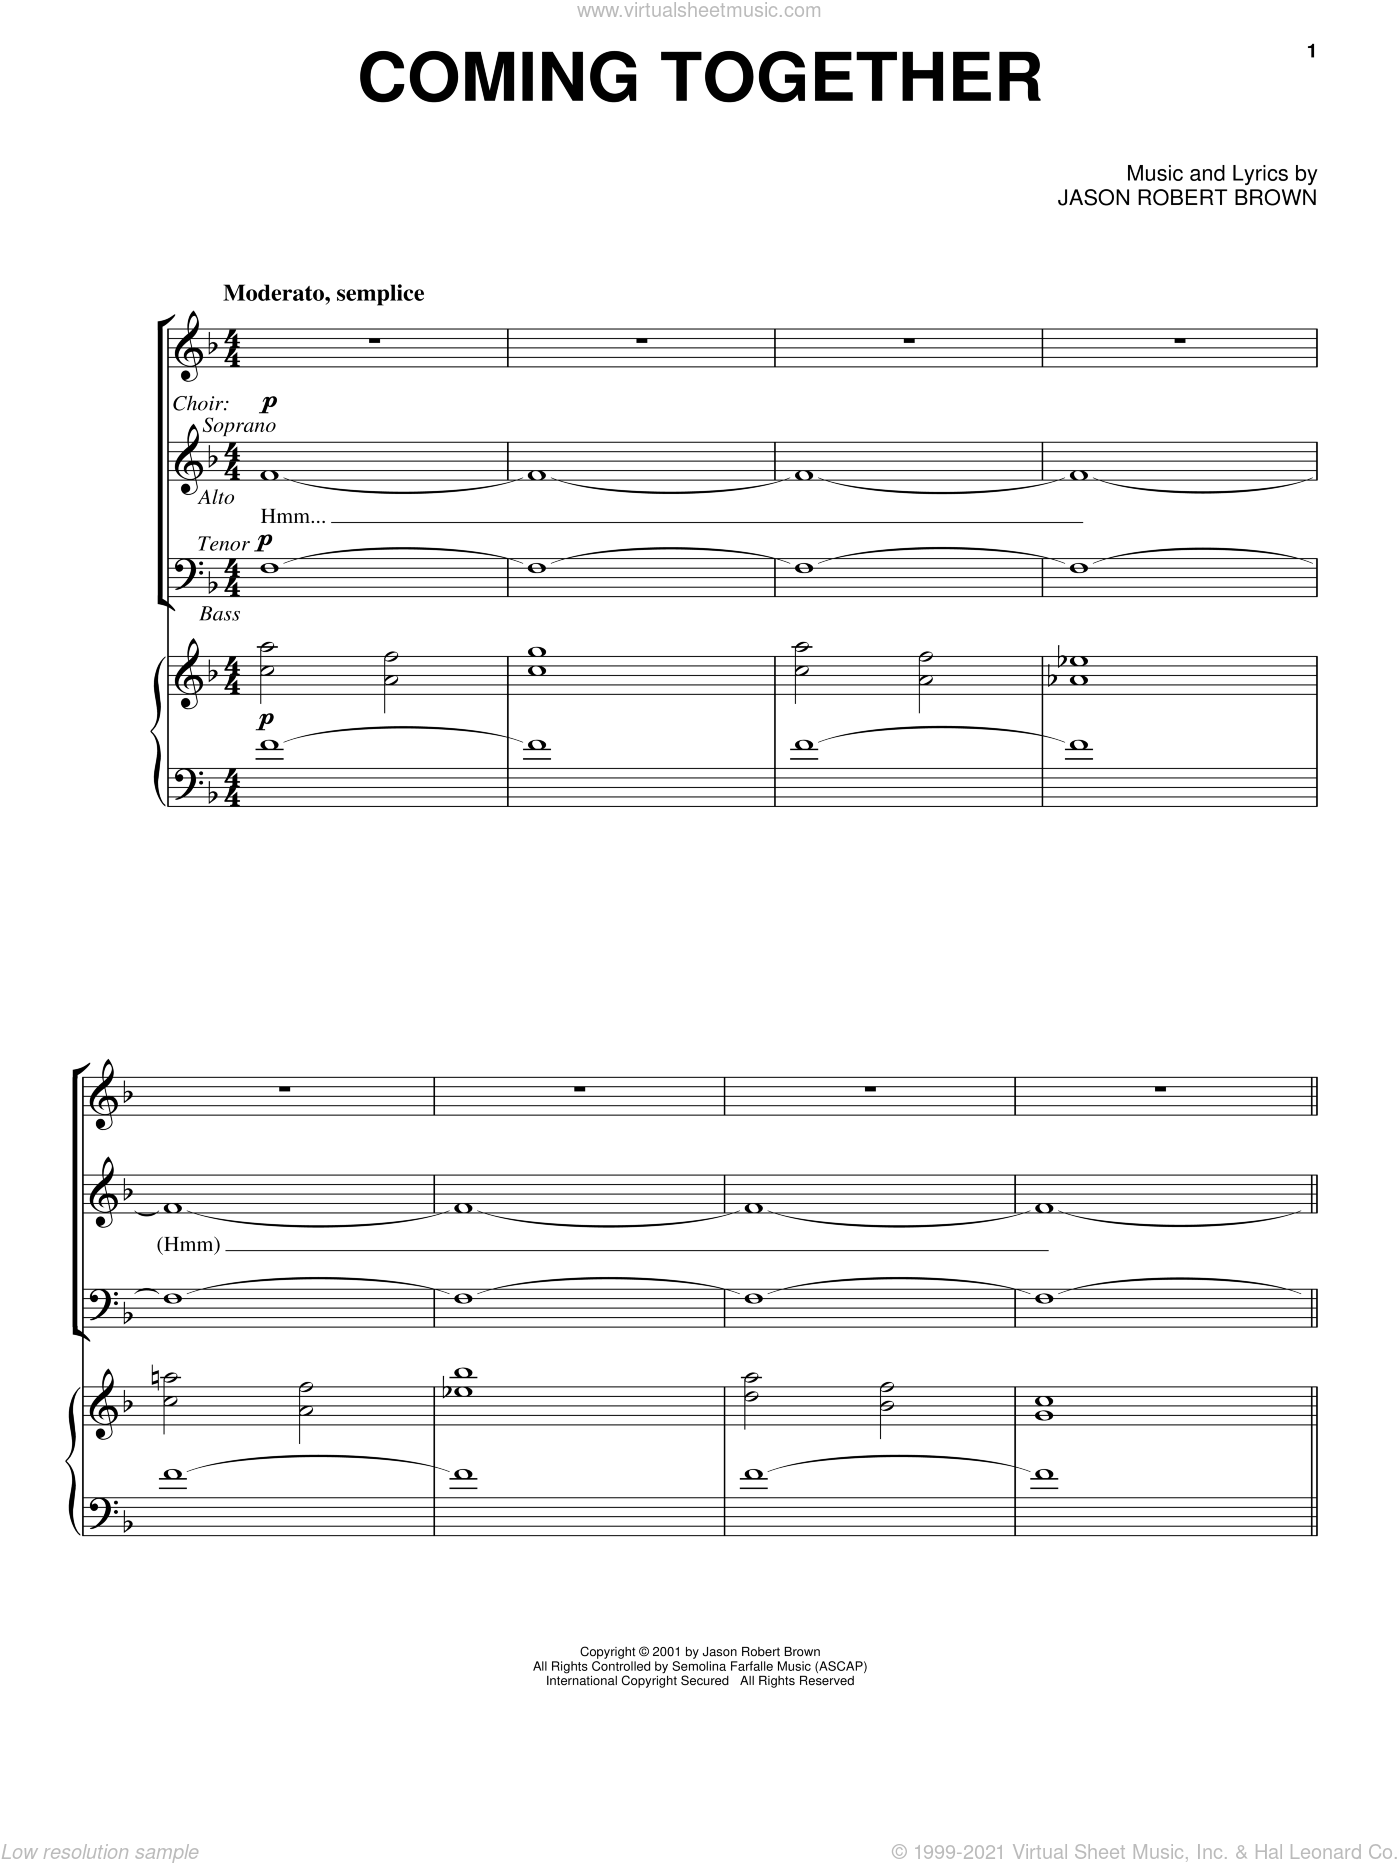 Coming Together sheet music for voice and piano by Jason Robert Brown